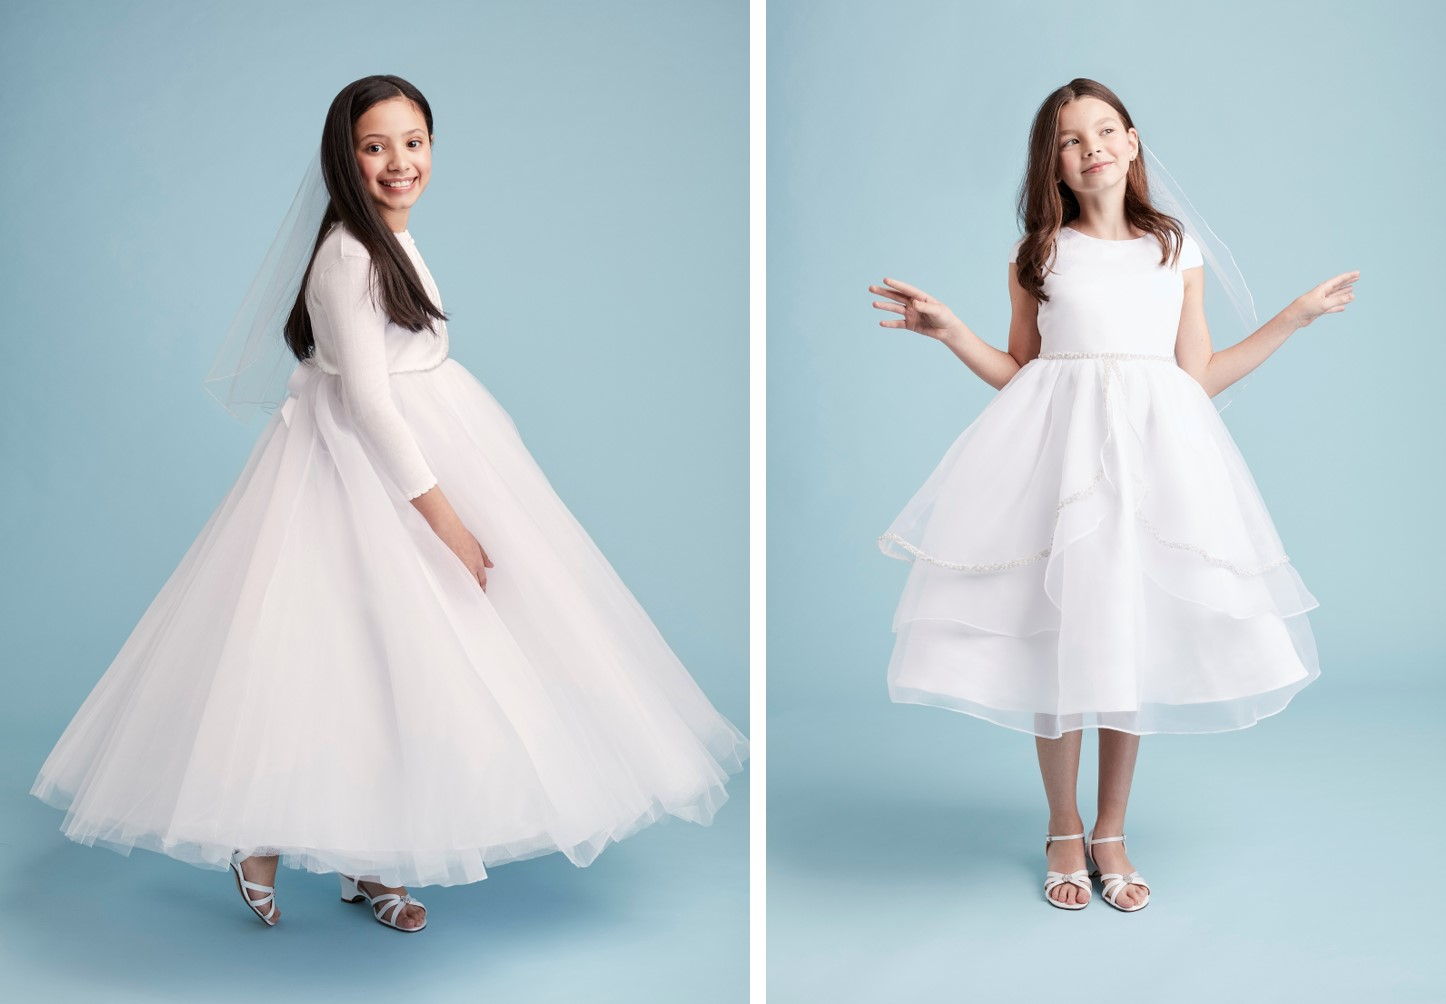 Two girls in white communion dresses